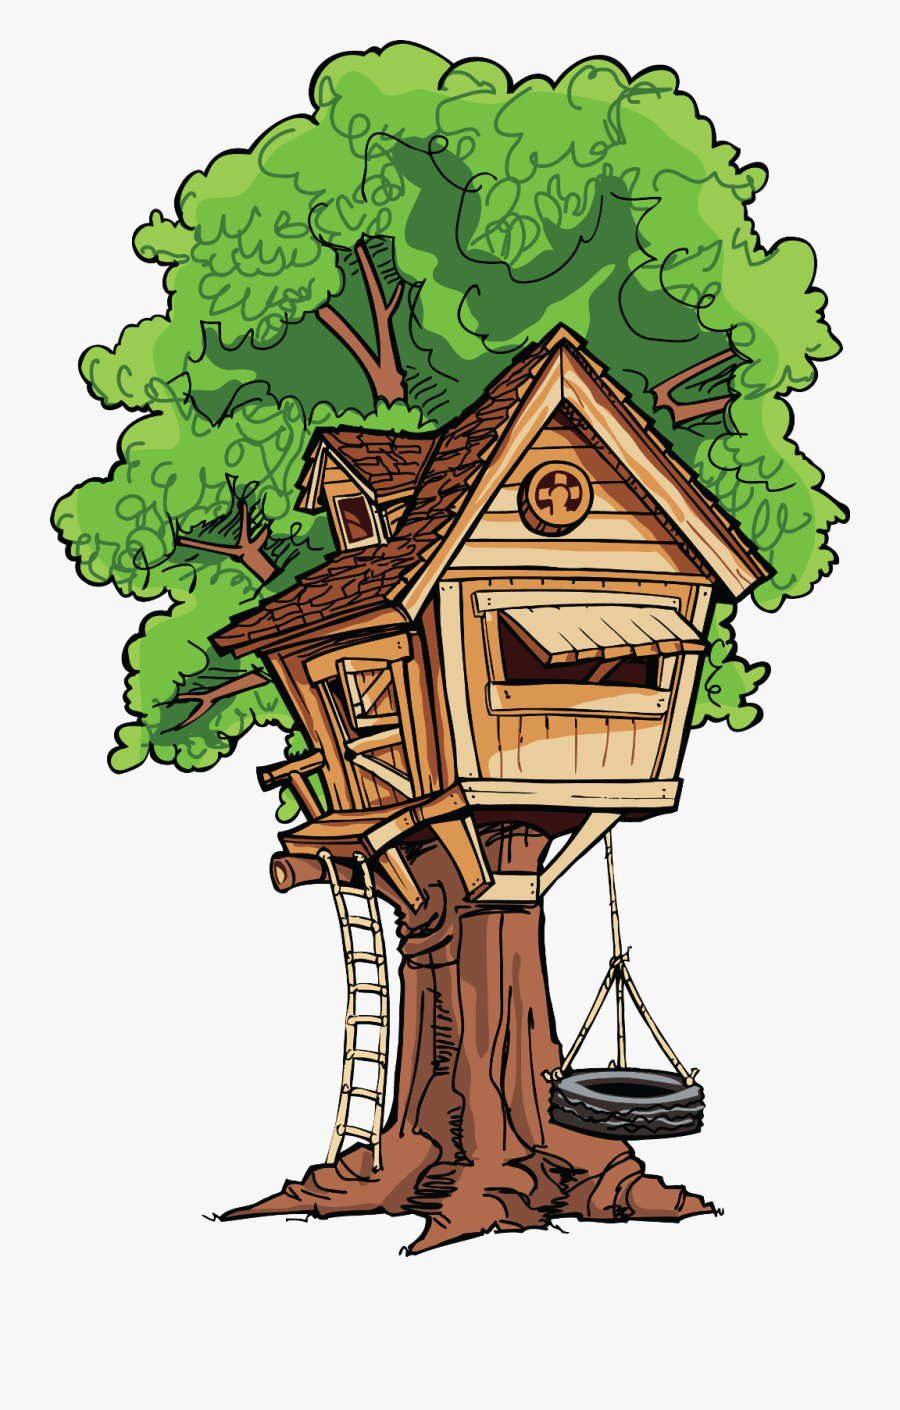 #treehouse #tree #tireswing #yard #playground #terrieasterly - Magic Tree House Tree House, Transparent Clipart